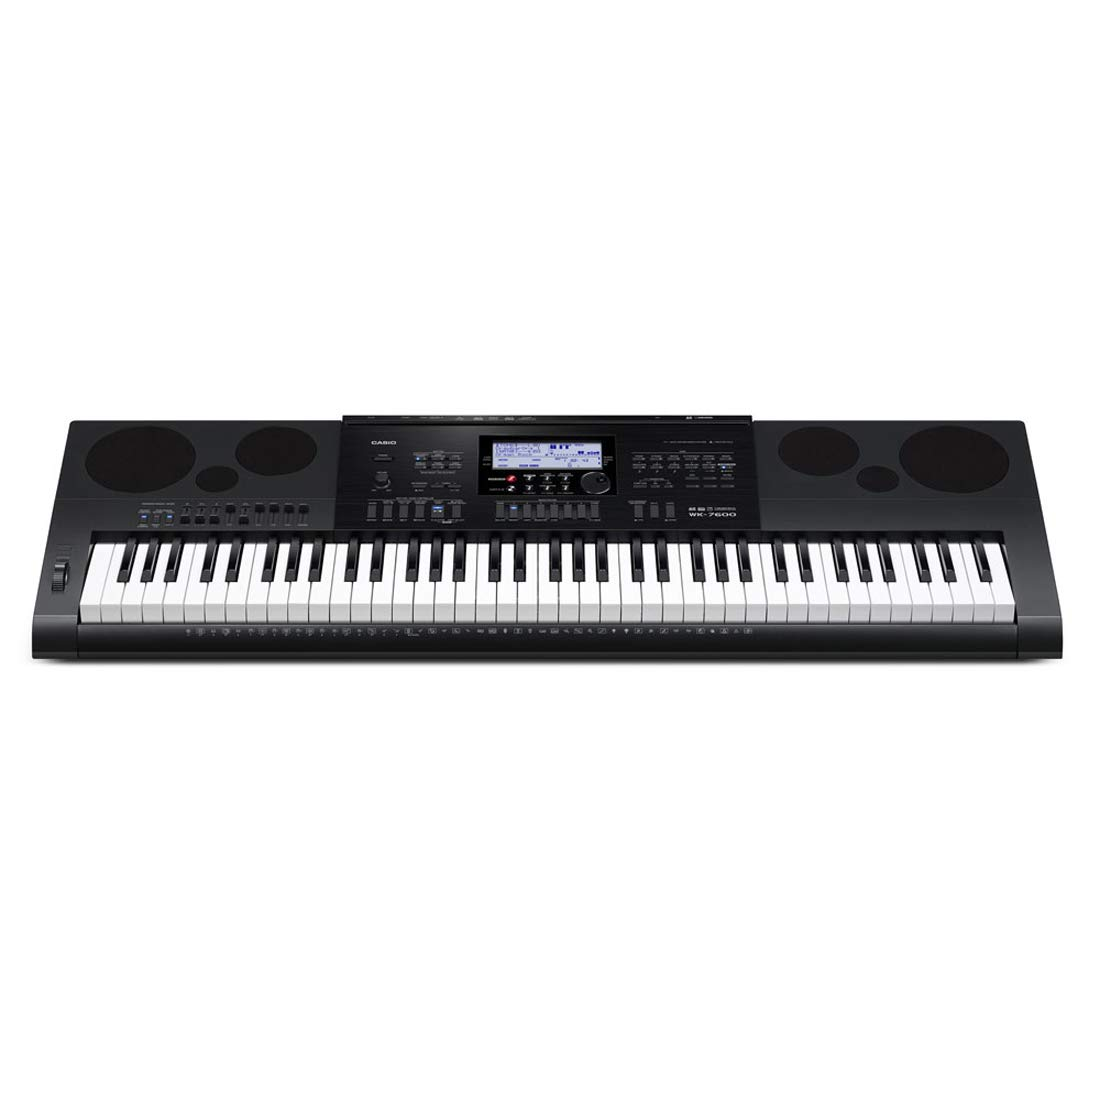 Casio WK 7600 Drawbars